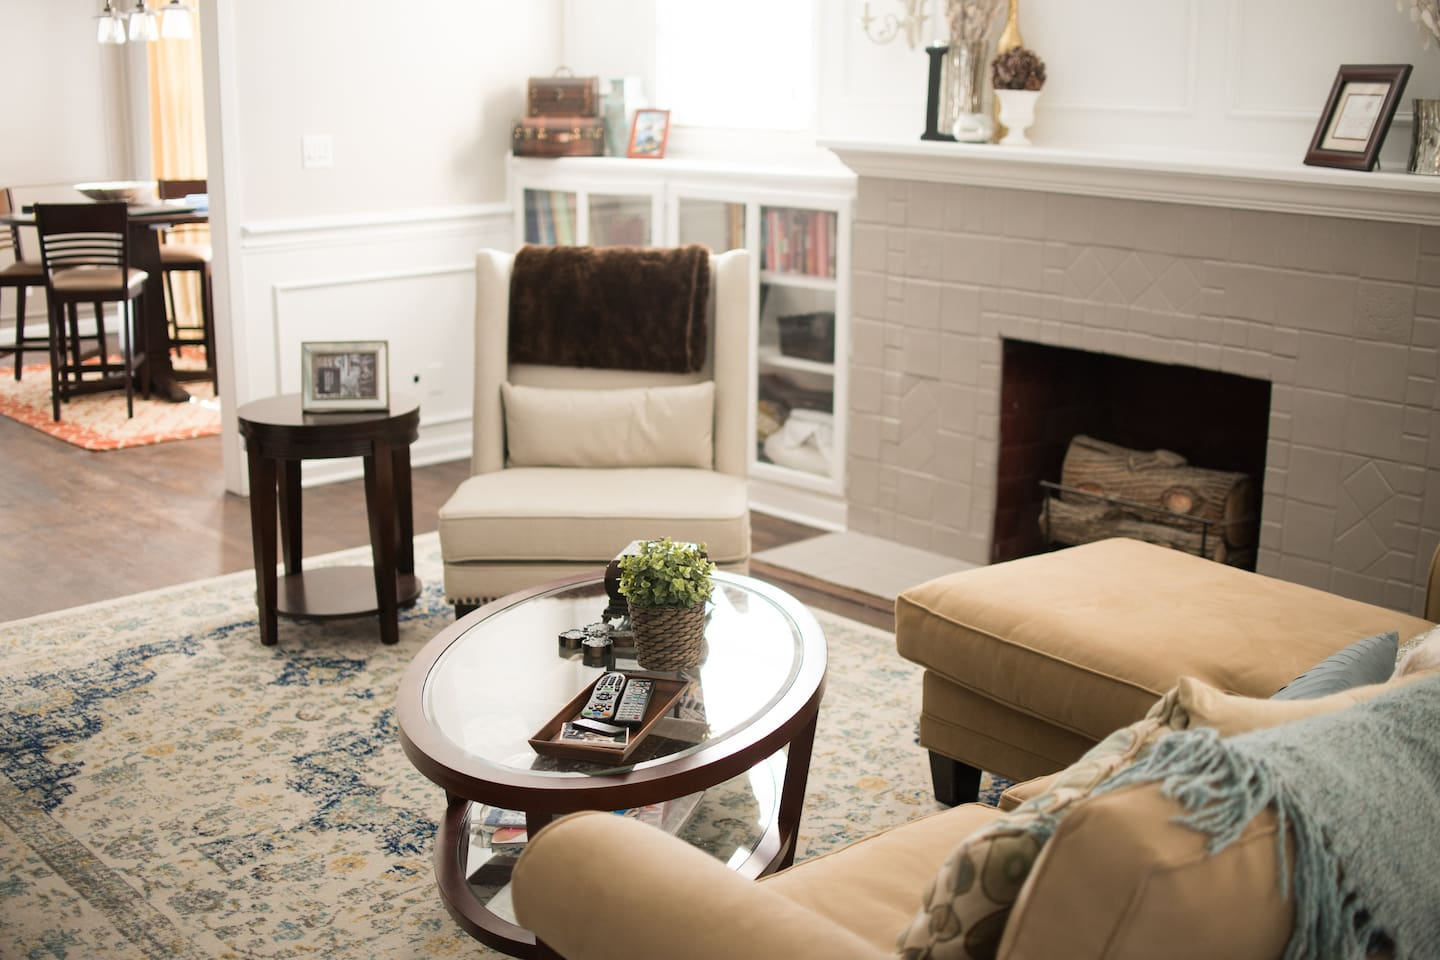 Private Room in the Heart of FW